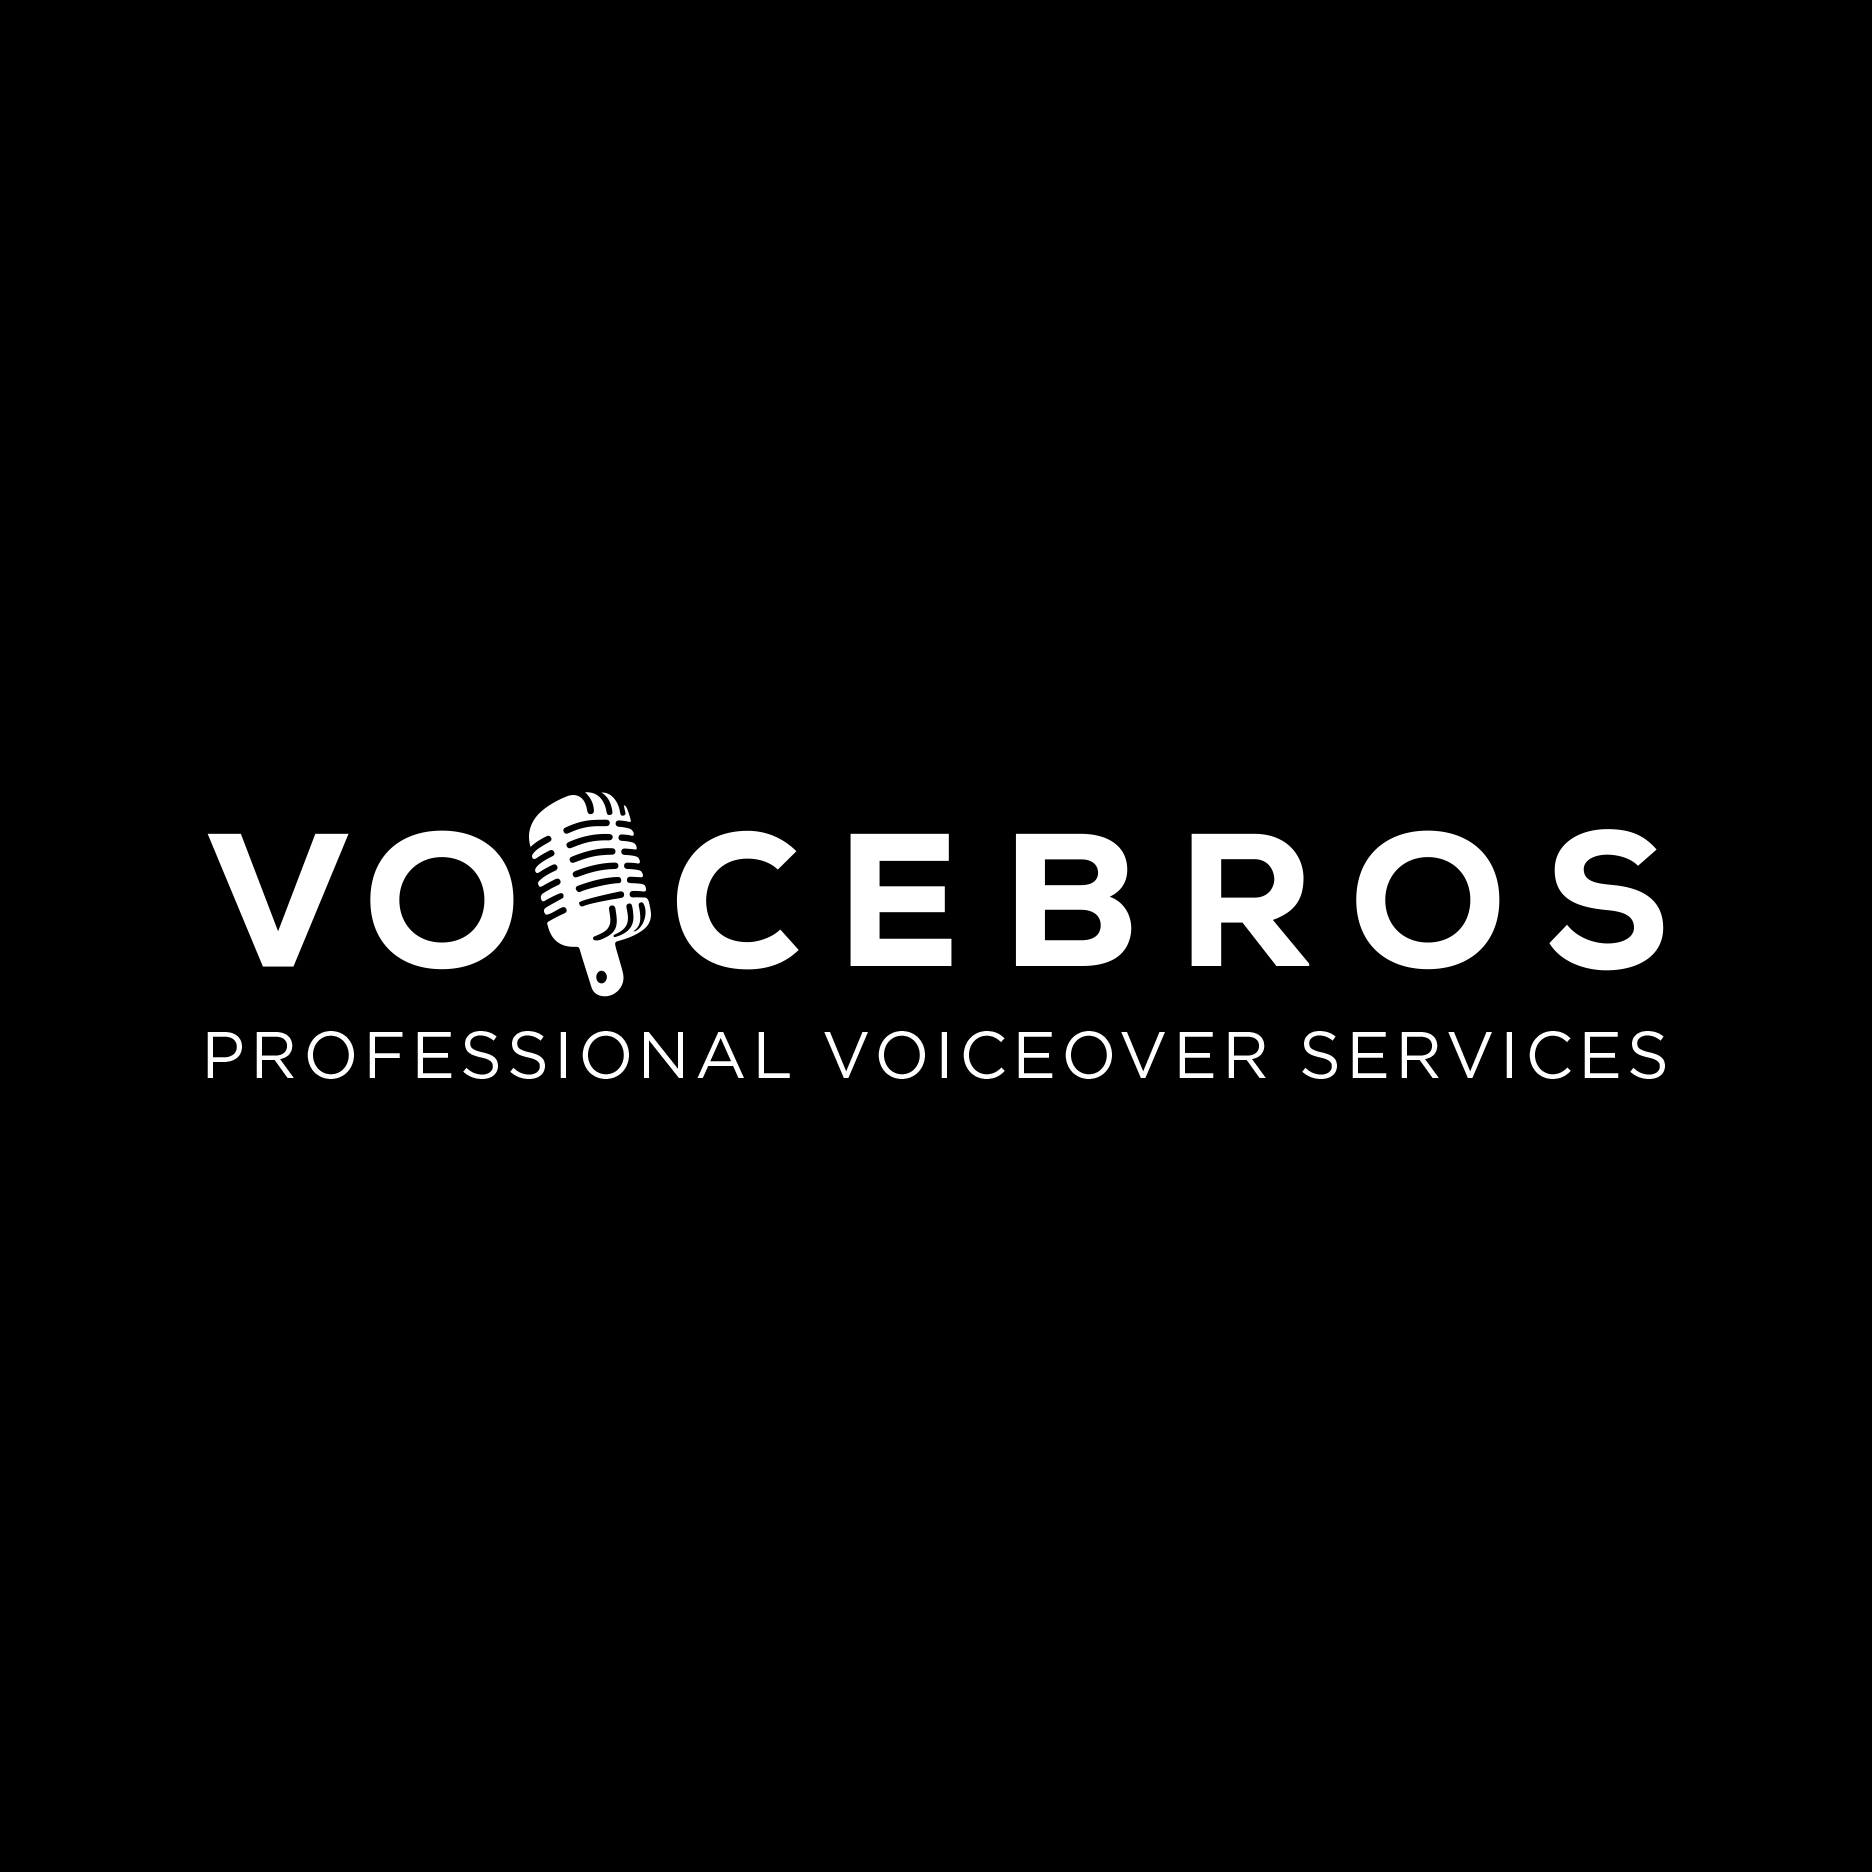 Richard Laing is a voice over actor